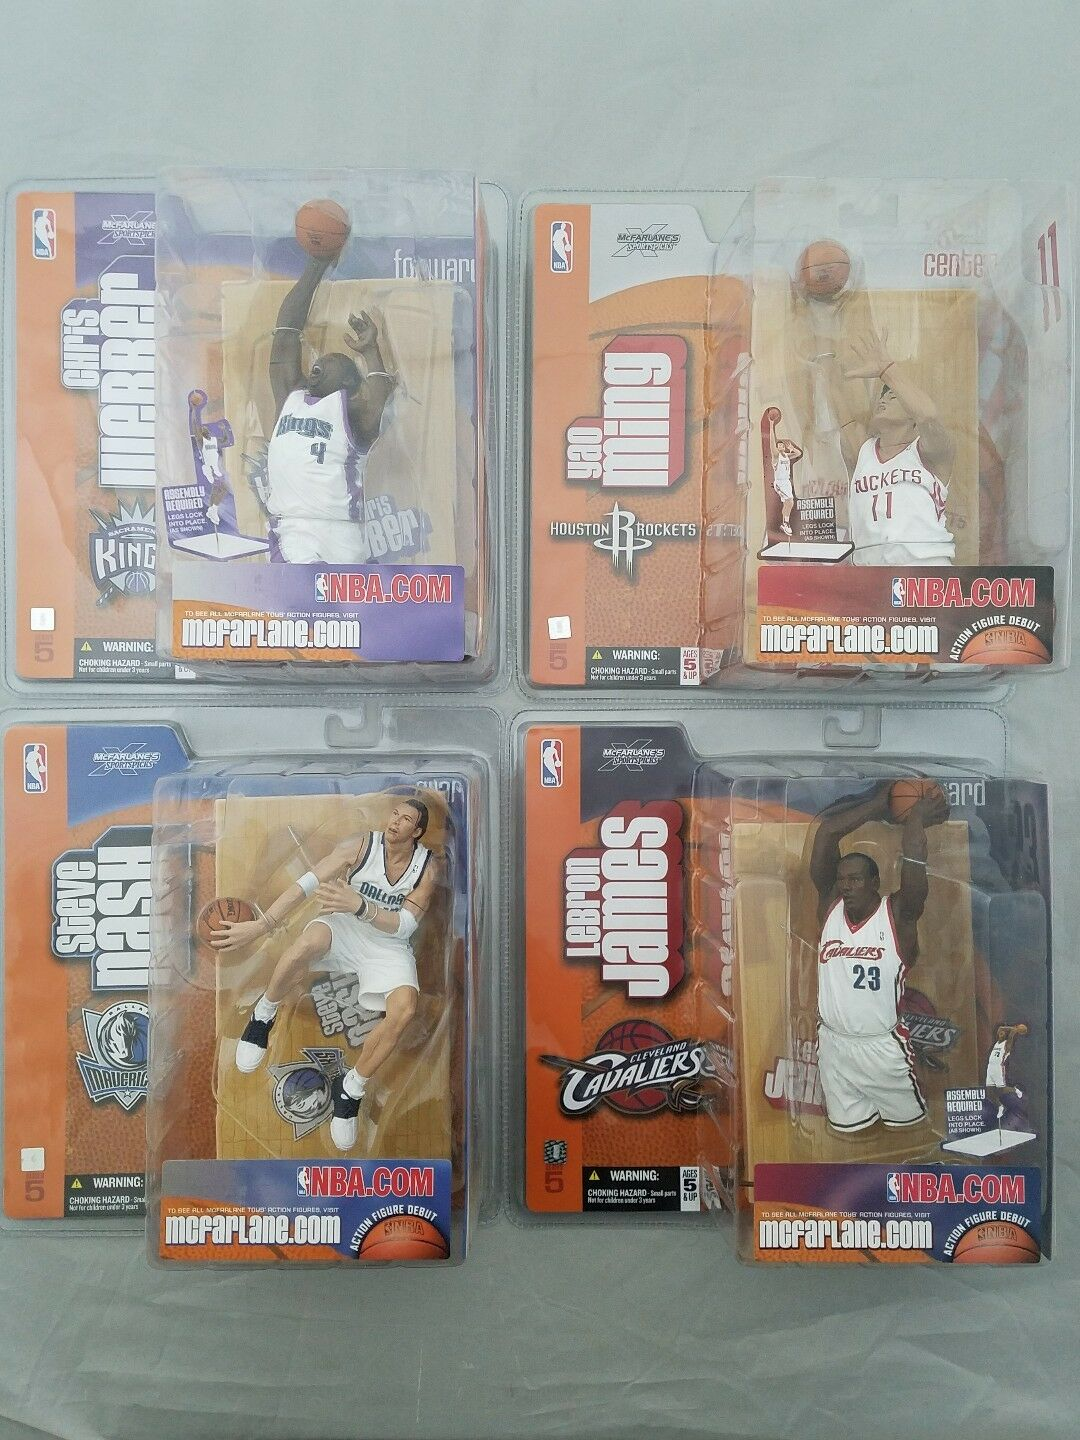 2003 Mcfarlane NBA Action Action Action Figures Lebron Nash Webber McGrady Yao Davis Lot of 9 1c9a9f